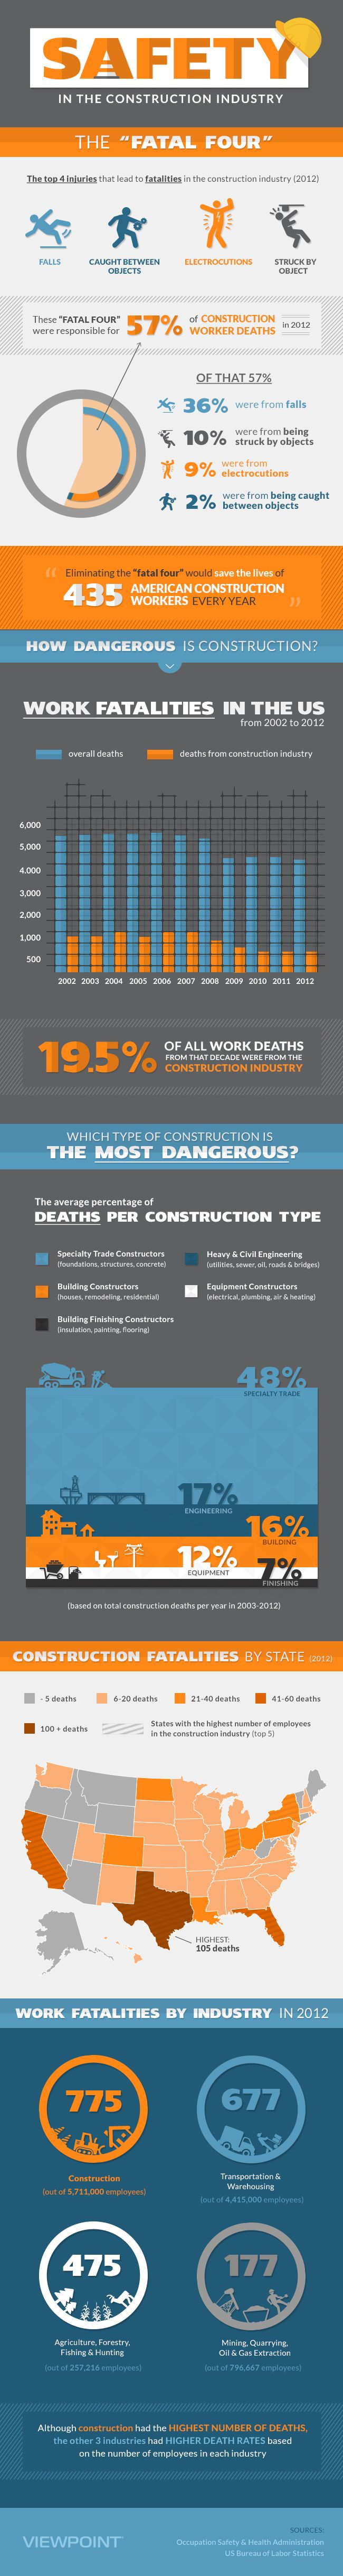 The Fatal 4 - Construction Safety